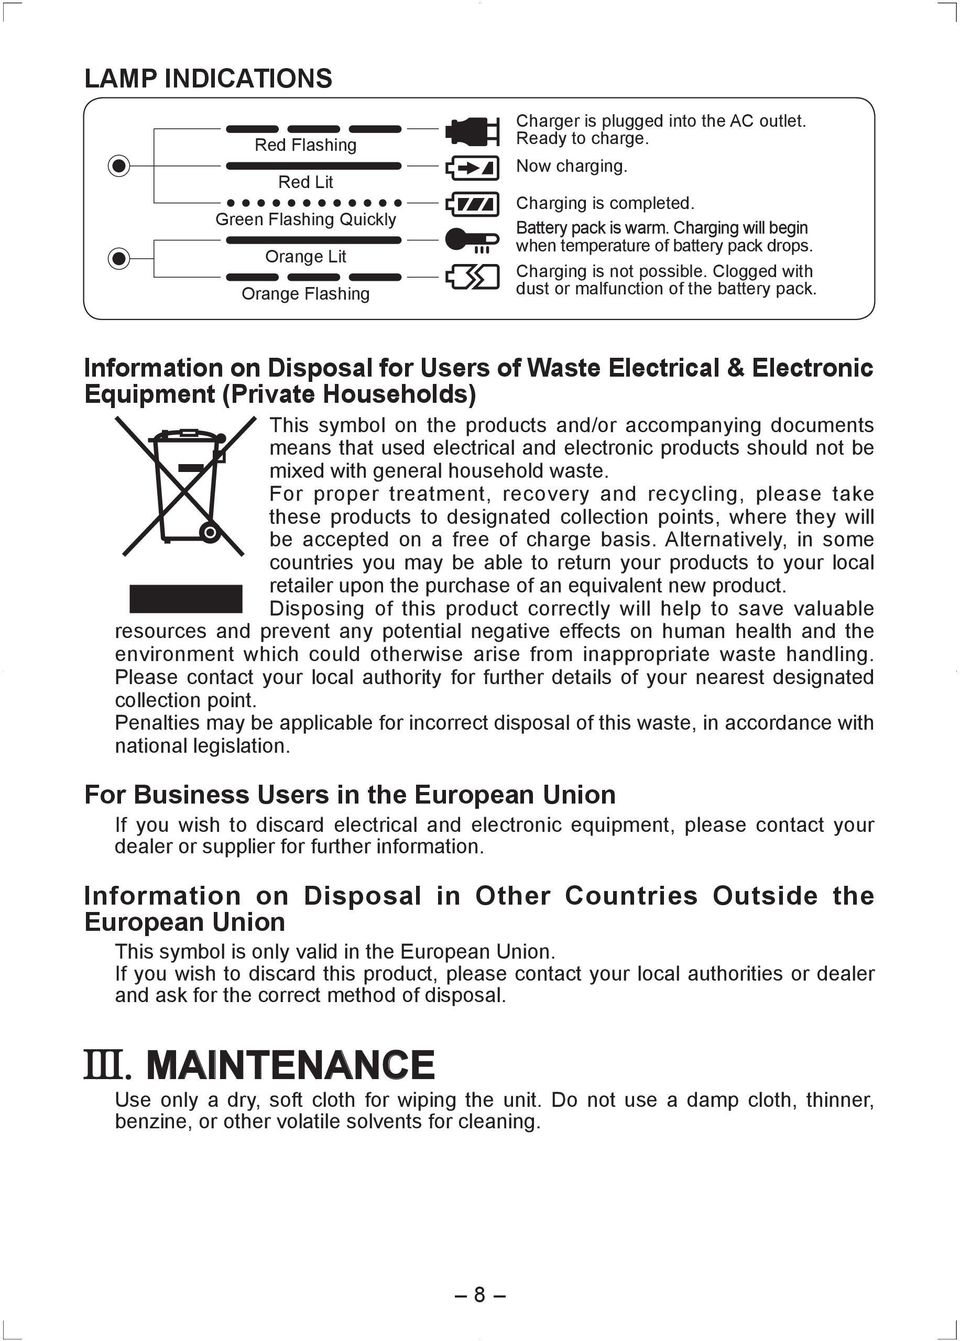 Information on Disposal for Users of Waste Electrical & Electronic Equipment (Private Households) This symbol on the products and/or accompanying documents means that used electrical and electronic